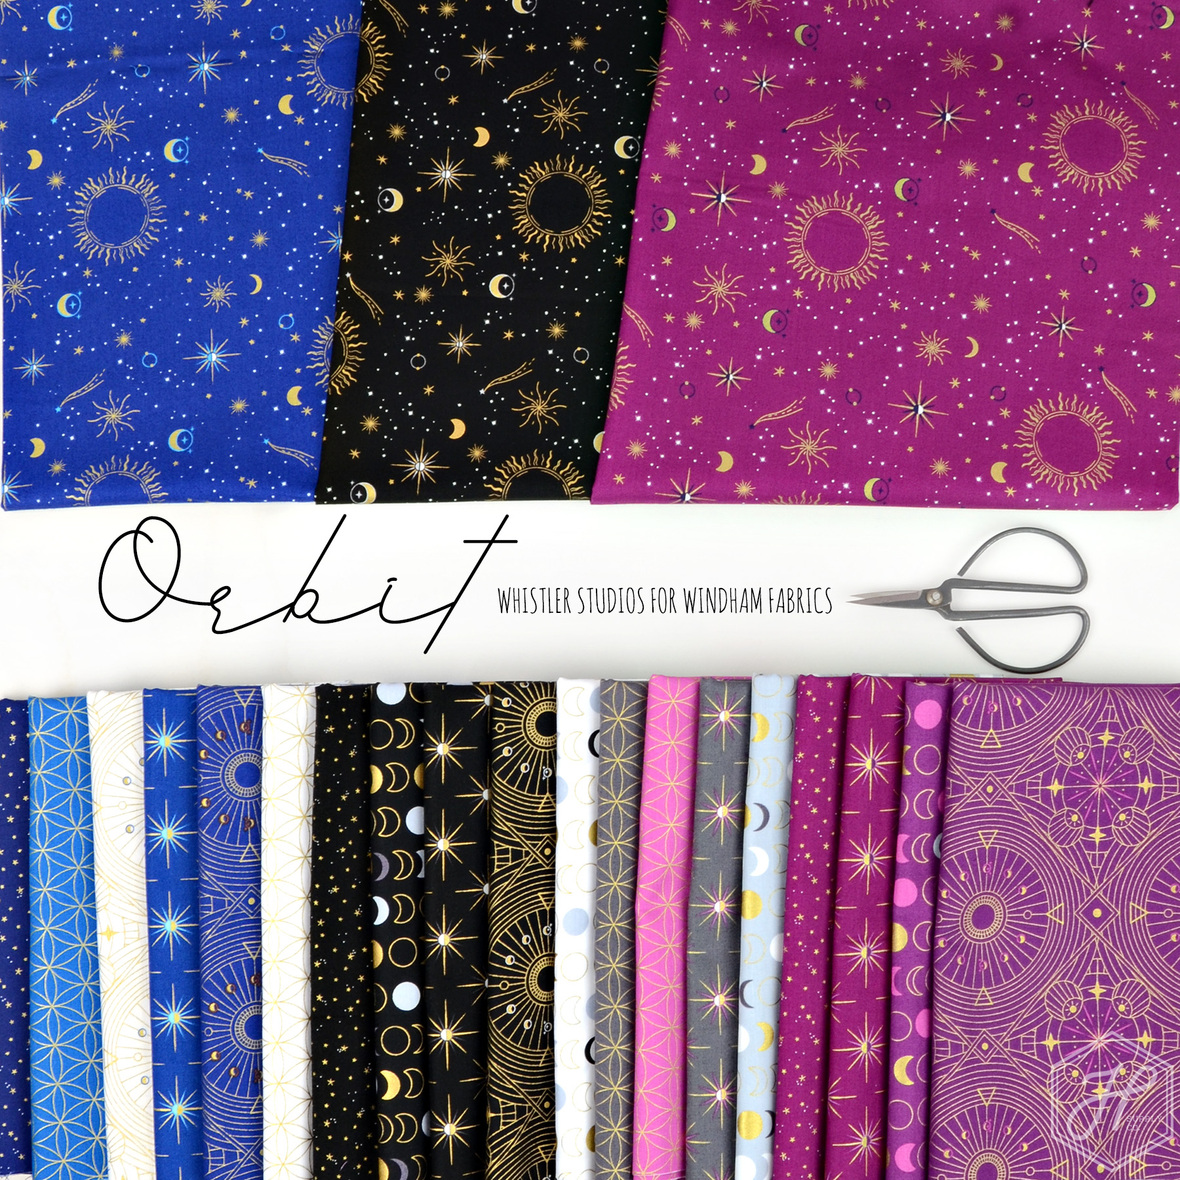 Orbit Whistler for Windham fabric at Hawthorne Supply Co